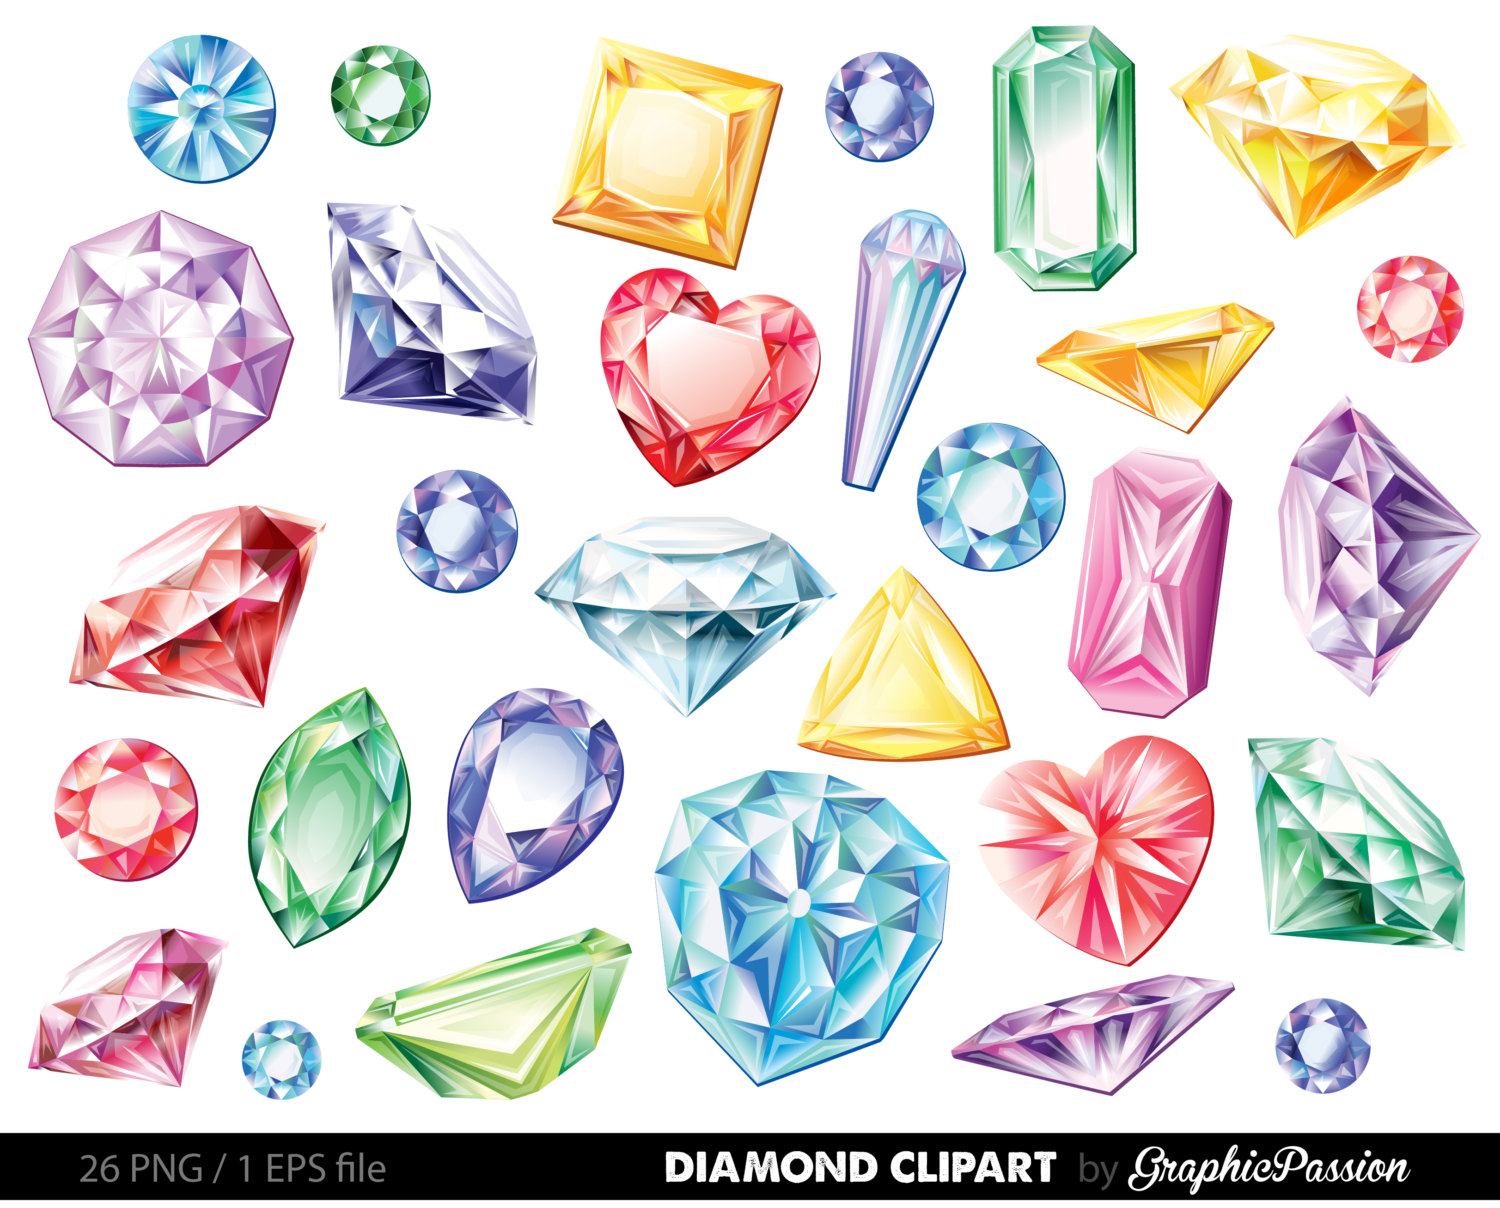 Diamonds clipart #15, Download drawings